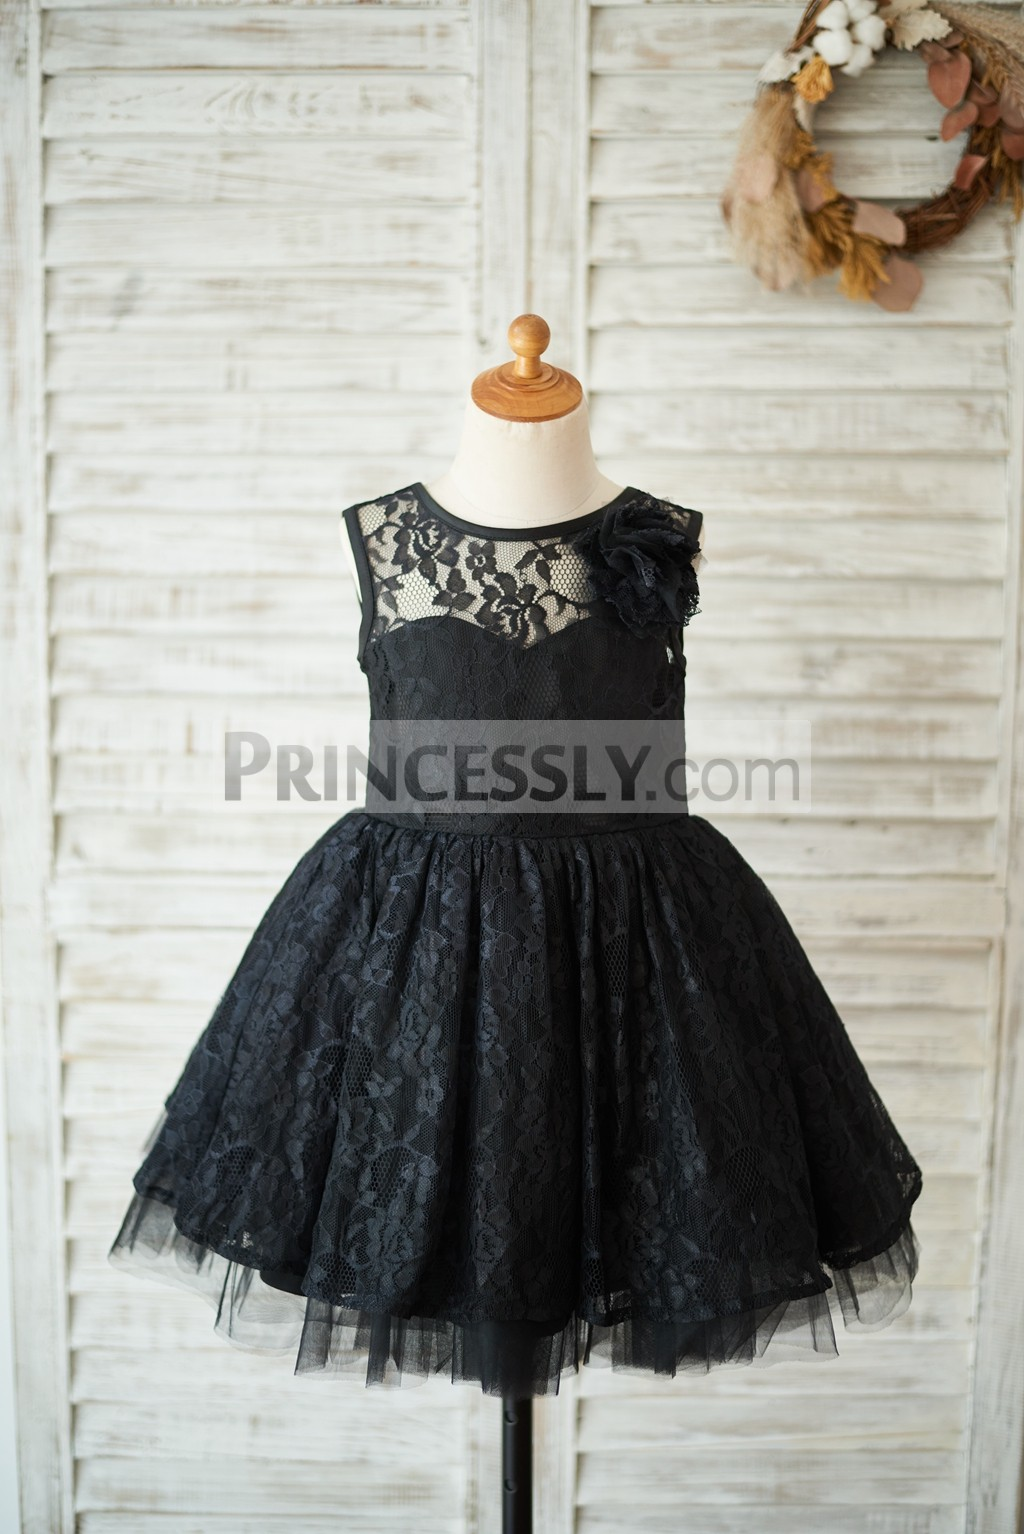 Sheer lace inside sweetheart black lace tulle flower girl dress